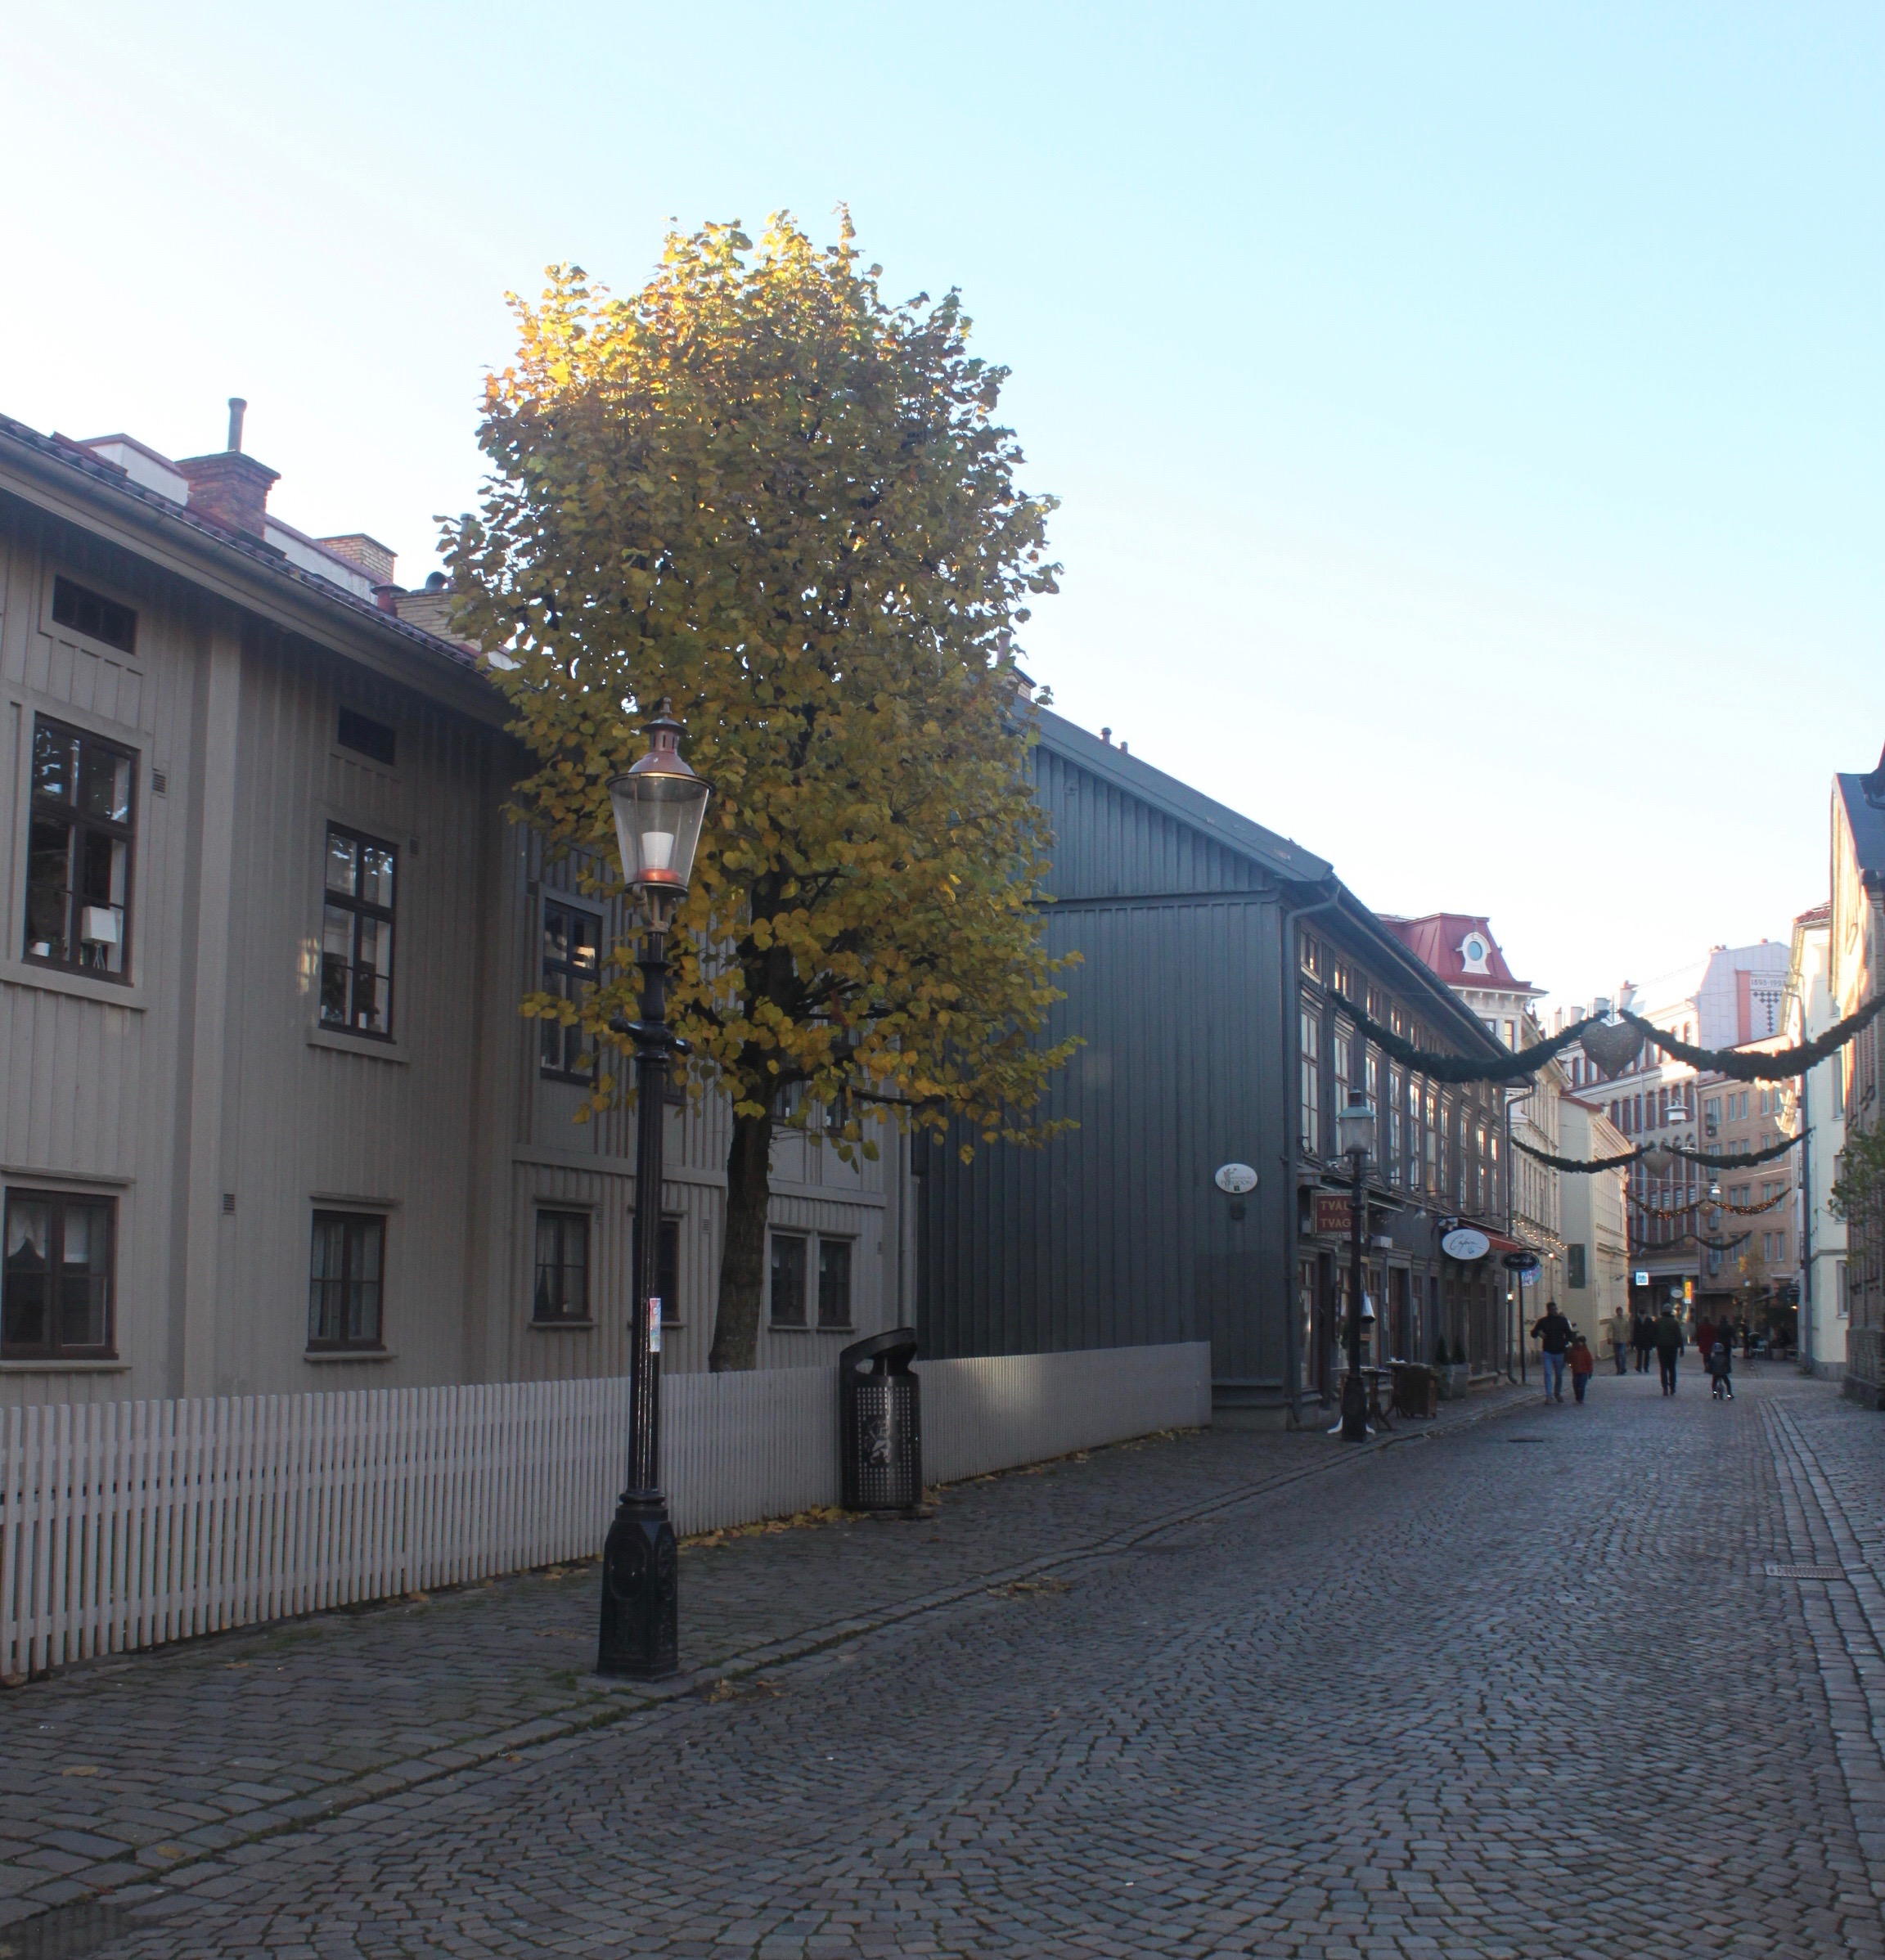 An afternoon view of the main drag, Haga Nygata. The cobblestone was incredible!